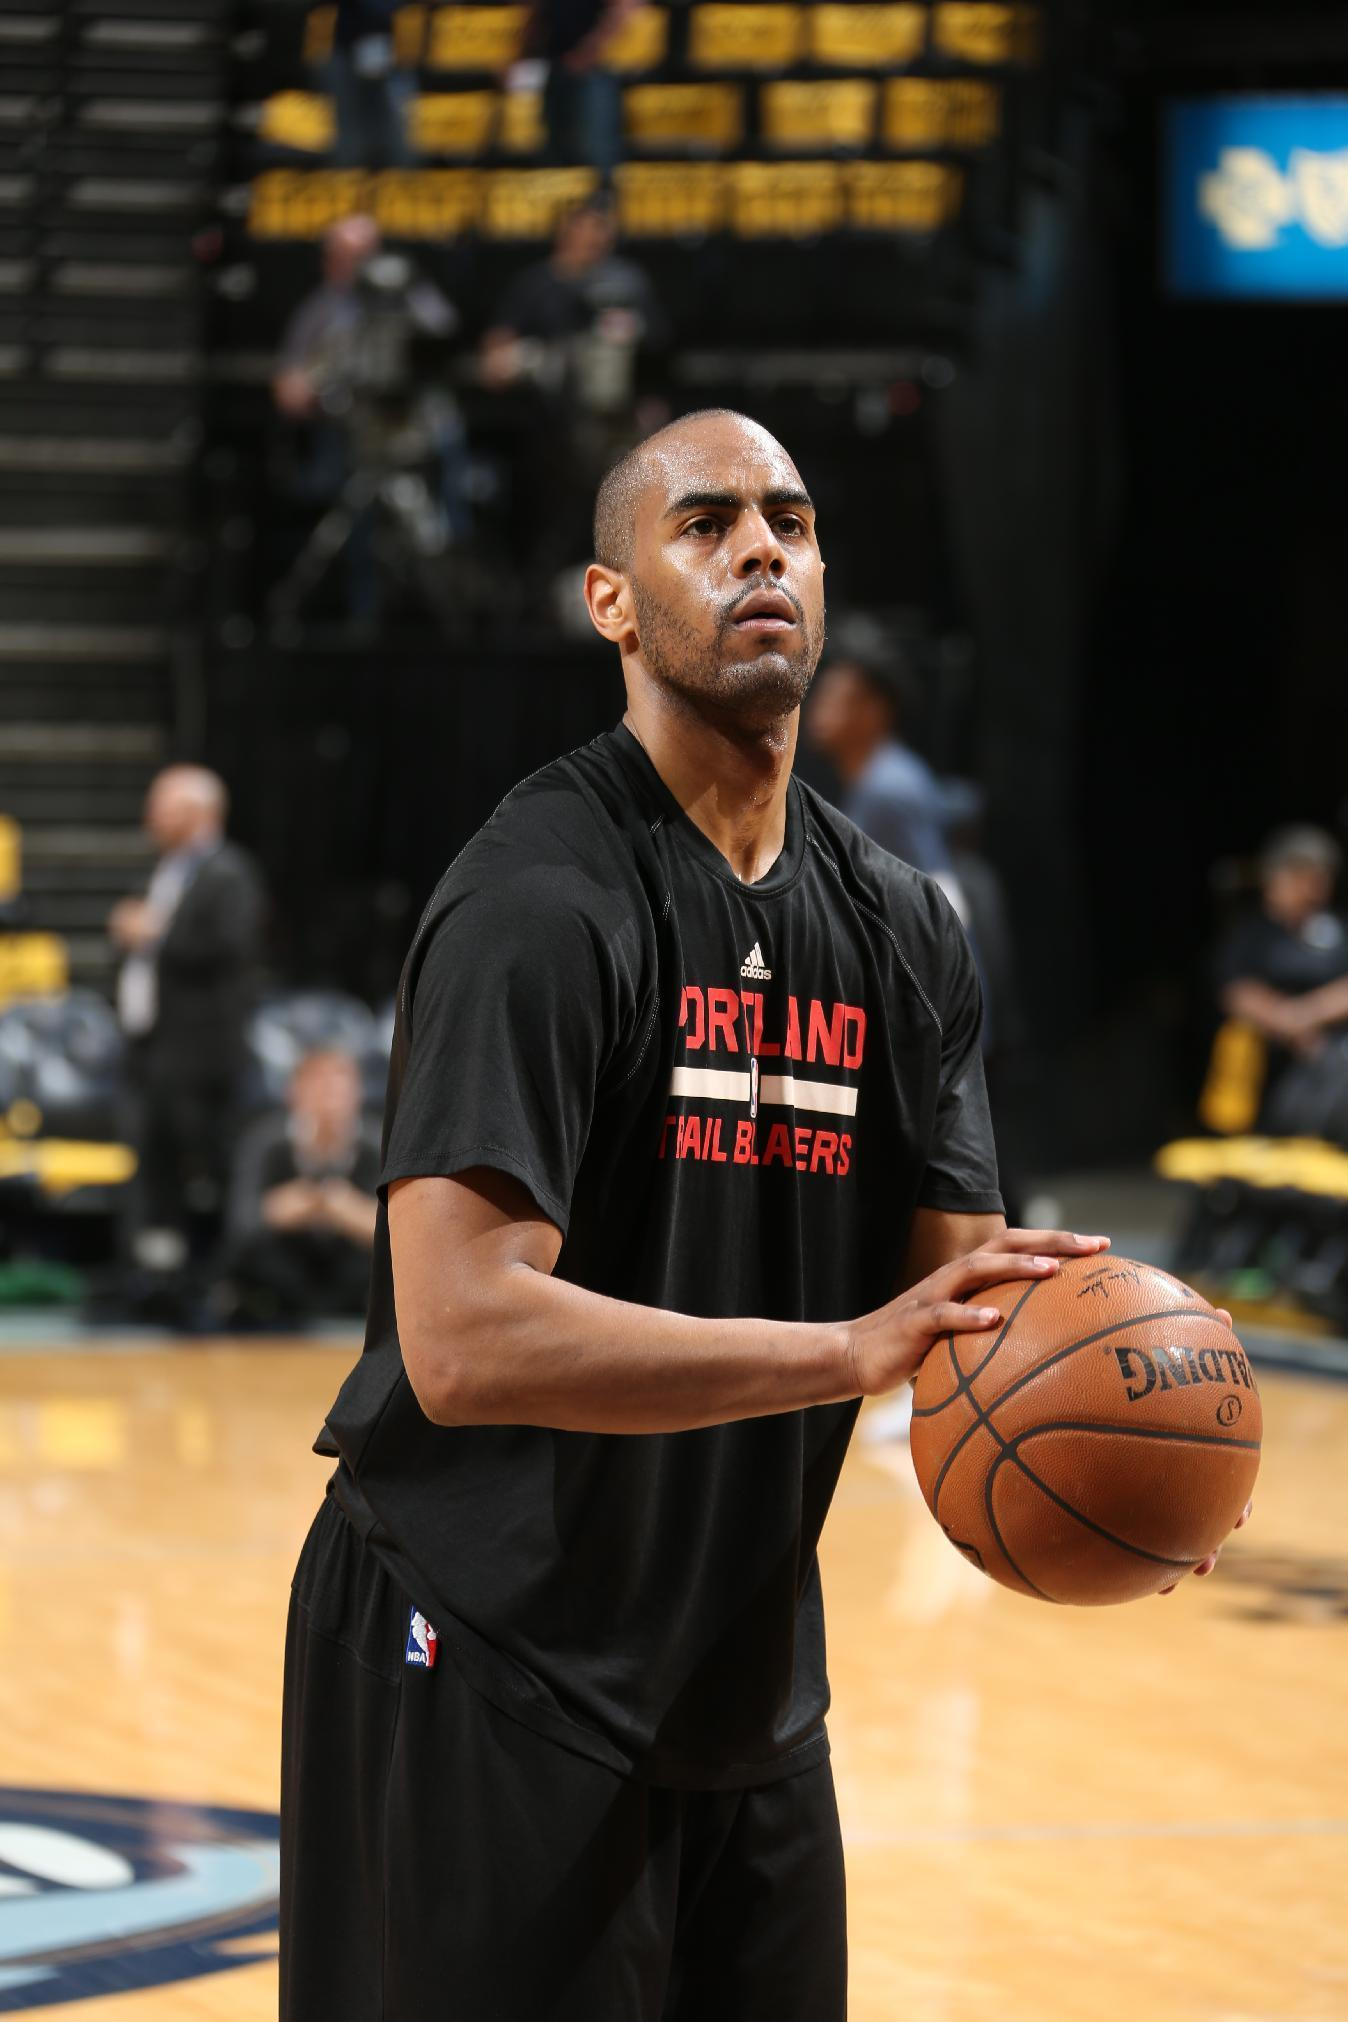 Portland's Afflalo probable for Game 3 vs. Grizzlies